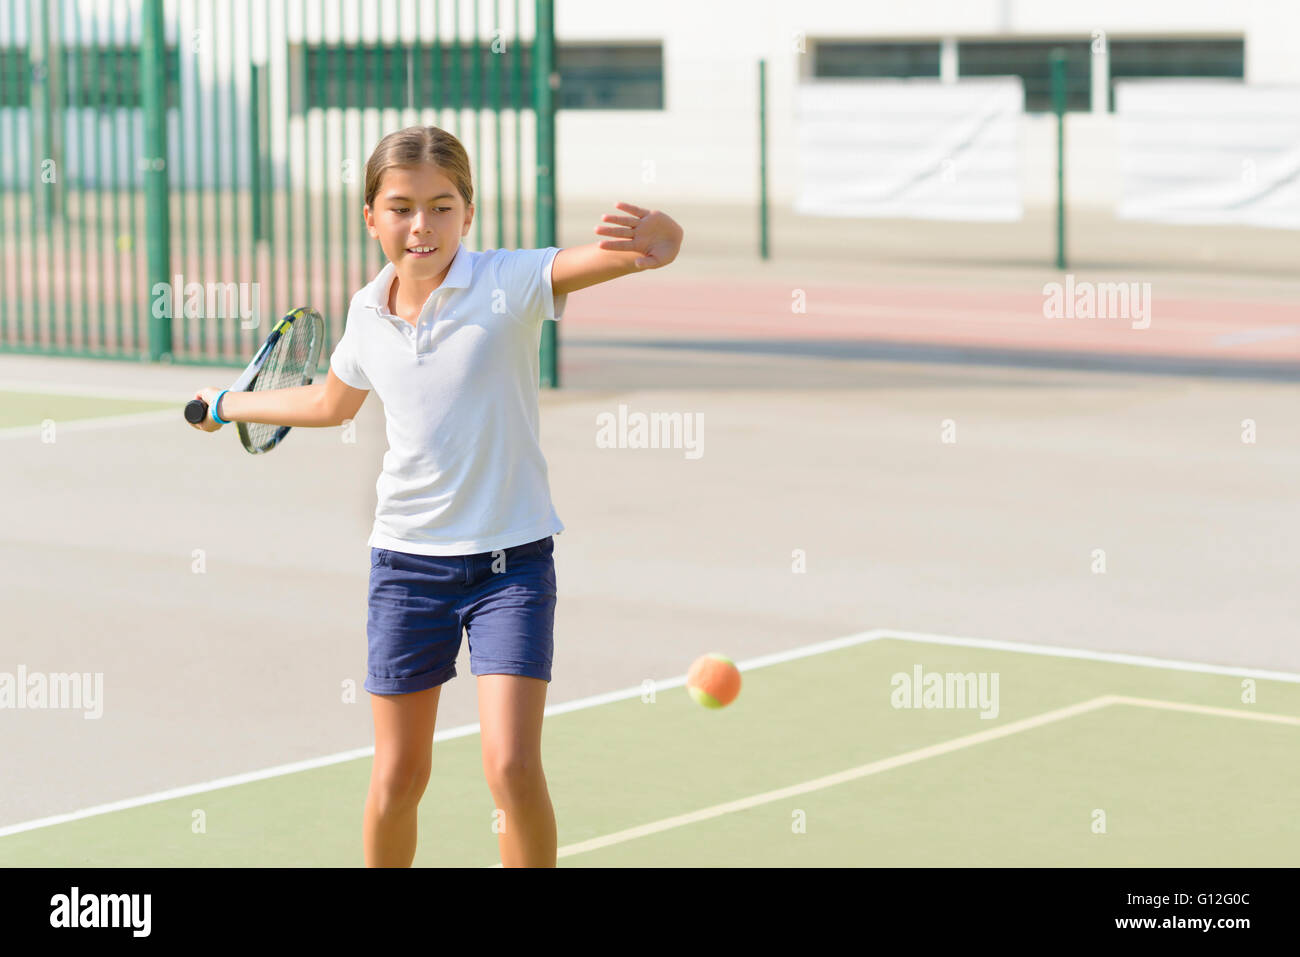 Belle jeune fille jouant au tennis sur le court de tennis Photo Stock